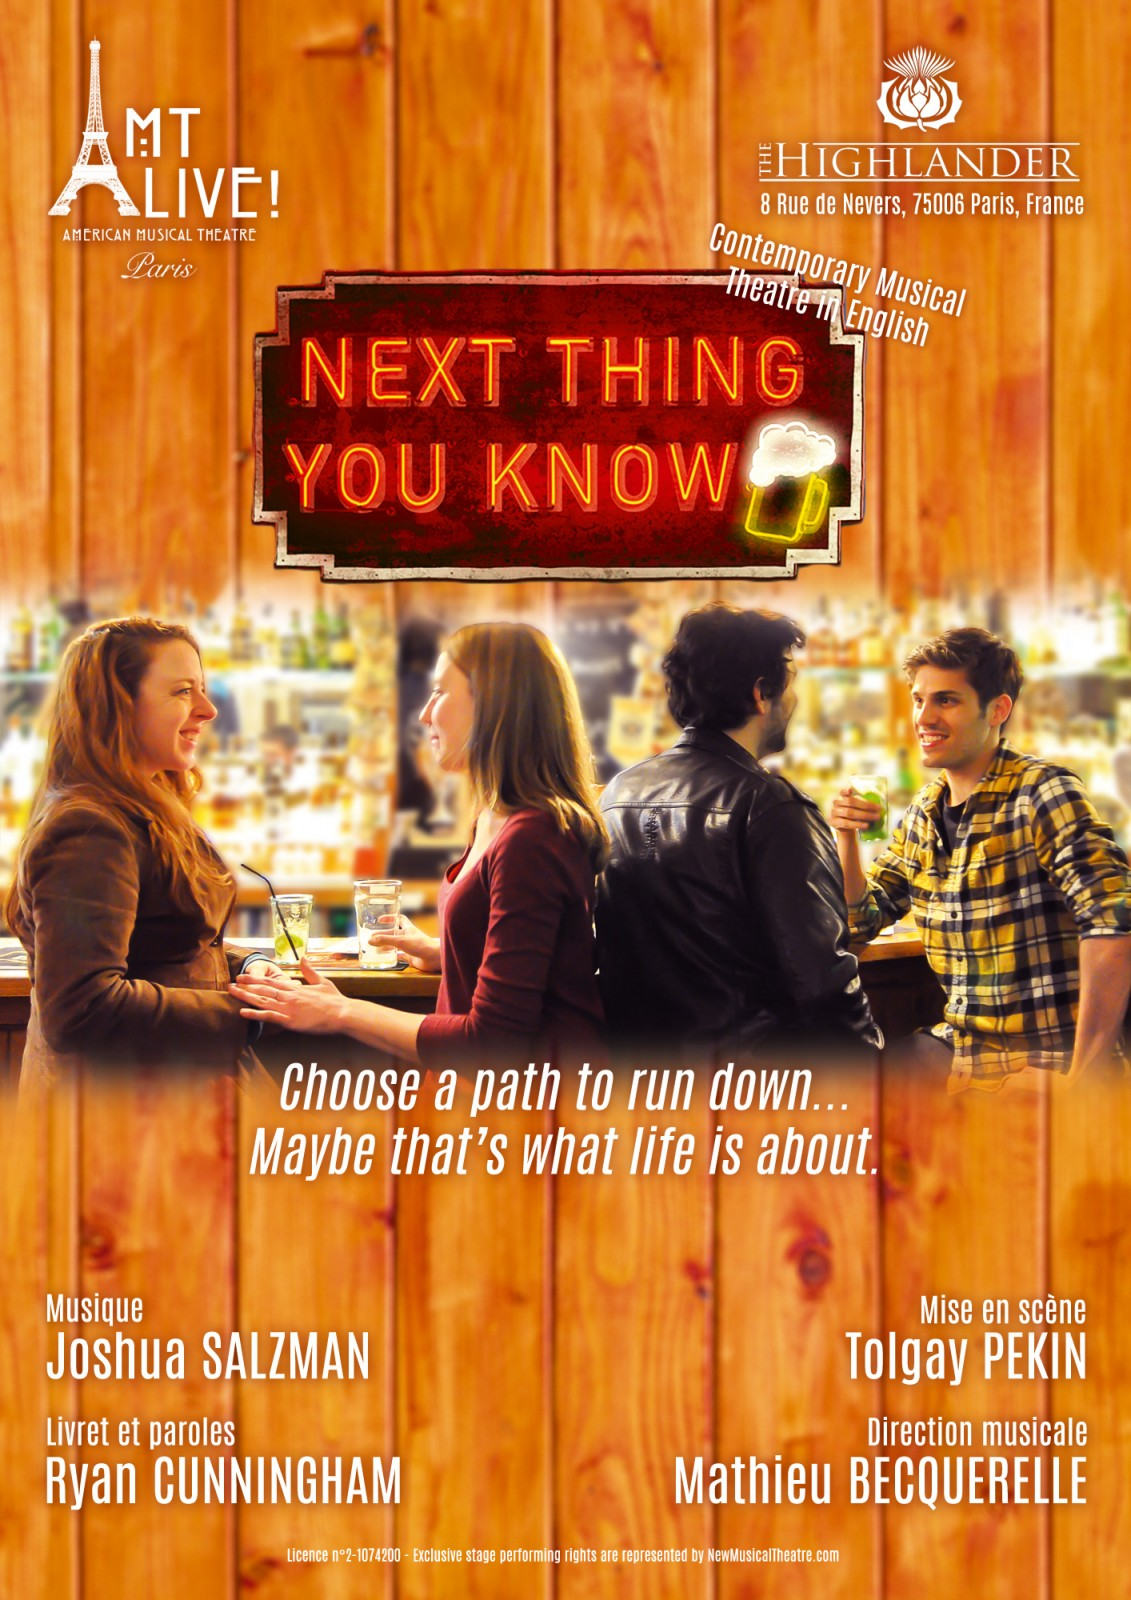 affiche-next-thing-you-know-poster-musical-off-broadway-joshua-salzman-ryan-cunningham-pub-highlander-bar-mise-en-scene-tolgay-pekin-copywright-amt-live-paris-nico-jan